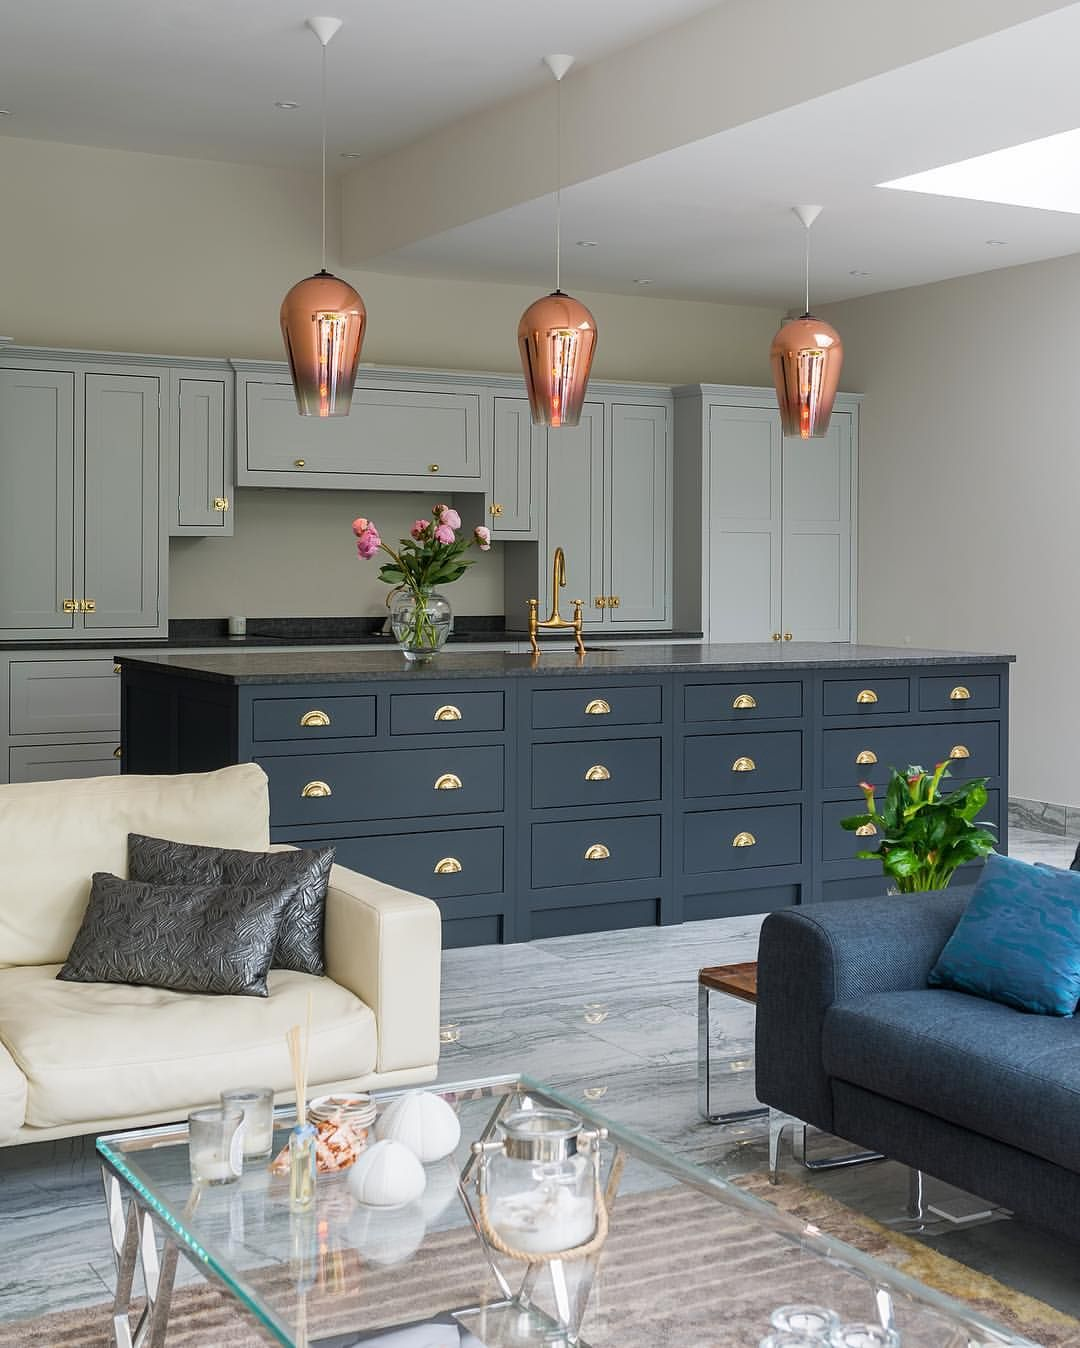 Midnight Blue Kitchen Island: A Beautiful Choice Of 'After Midnight' And 'Brushed Cotton